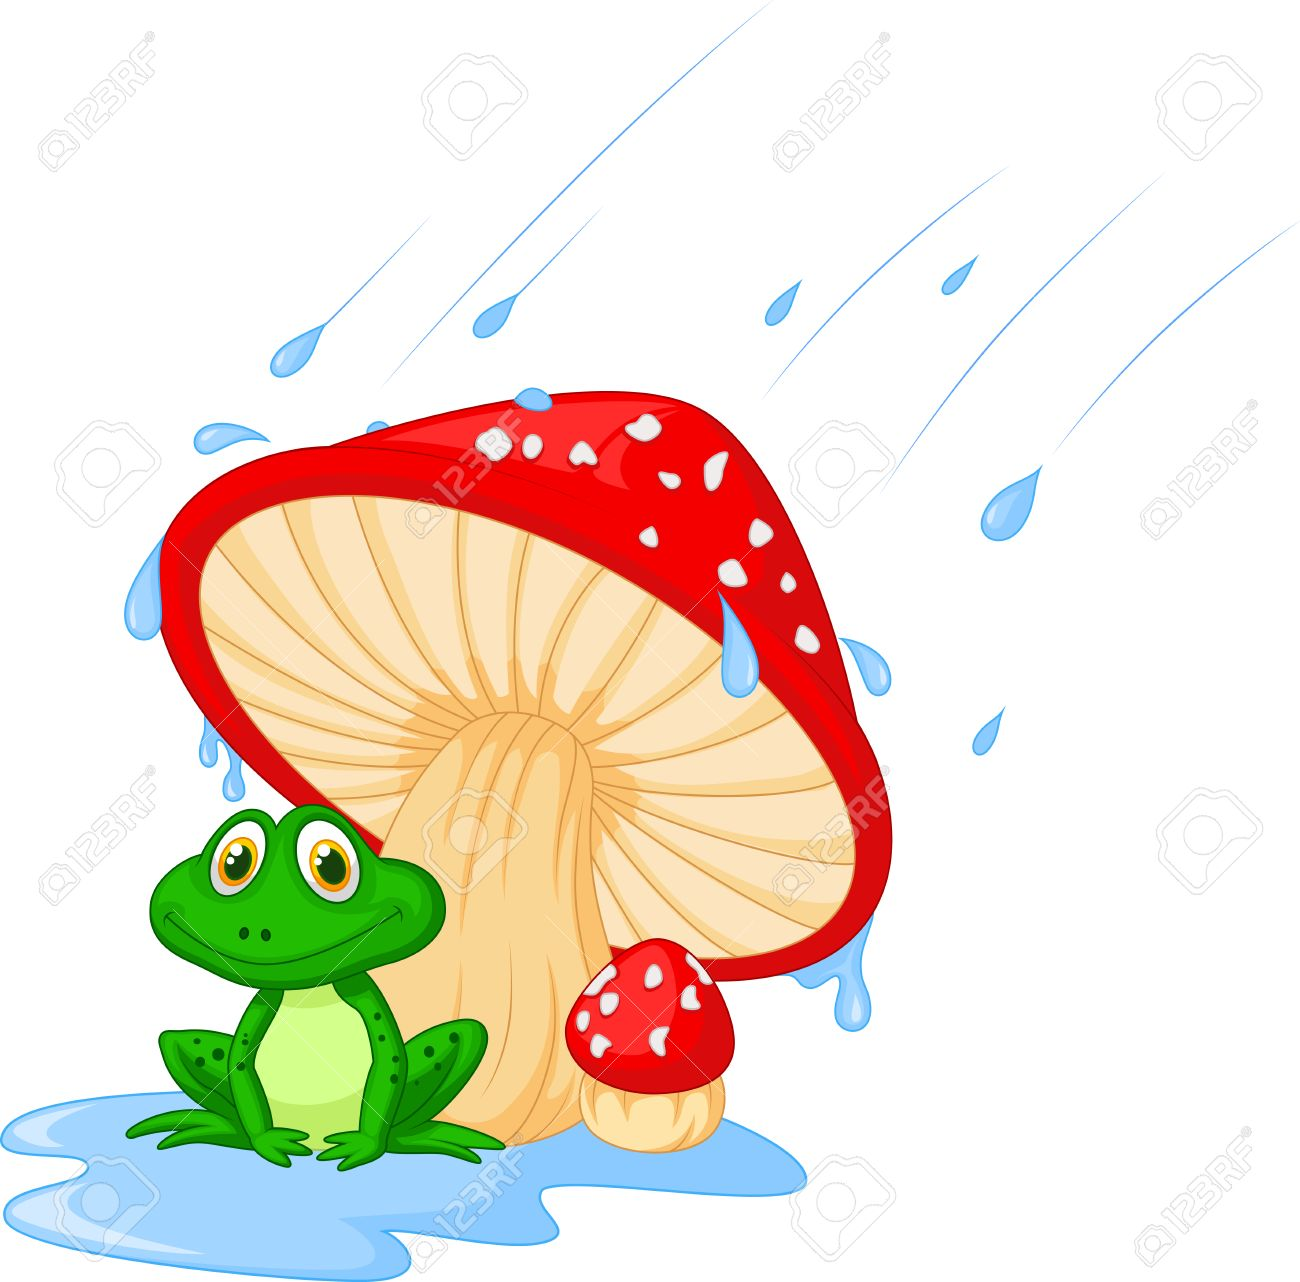 Cartoon mushroom with a toad Stock Vector - 23006461